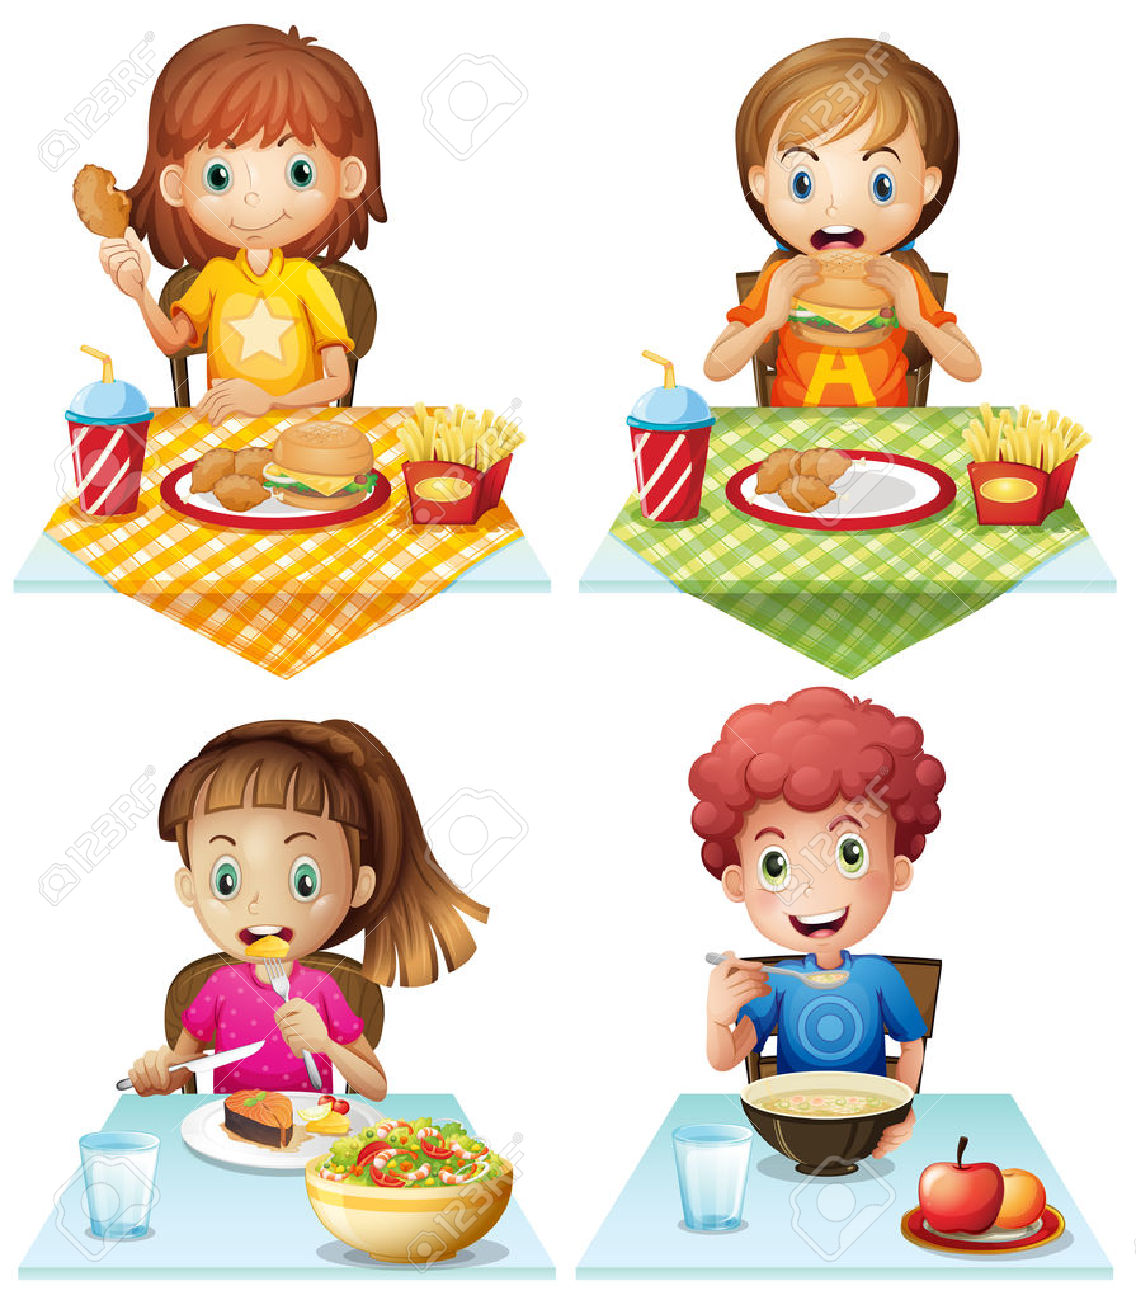 child eating junk food clipart - Clipground